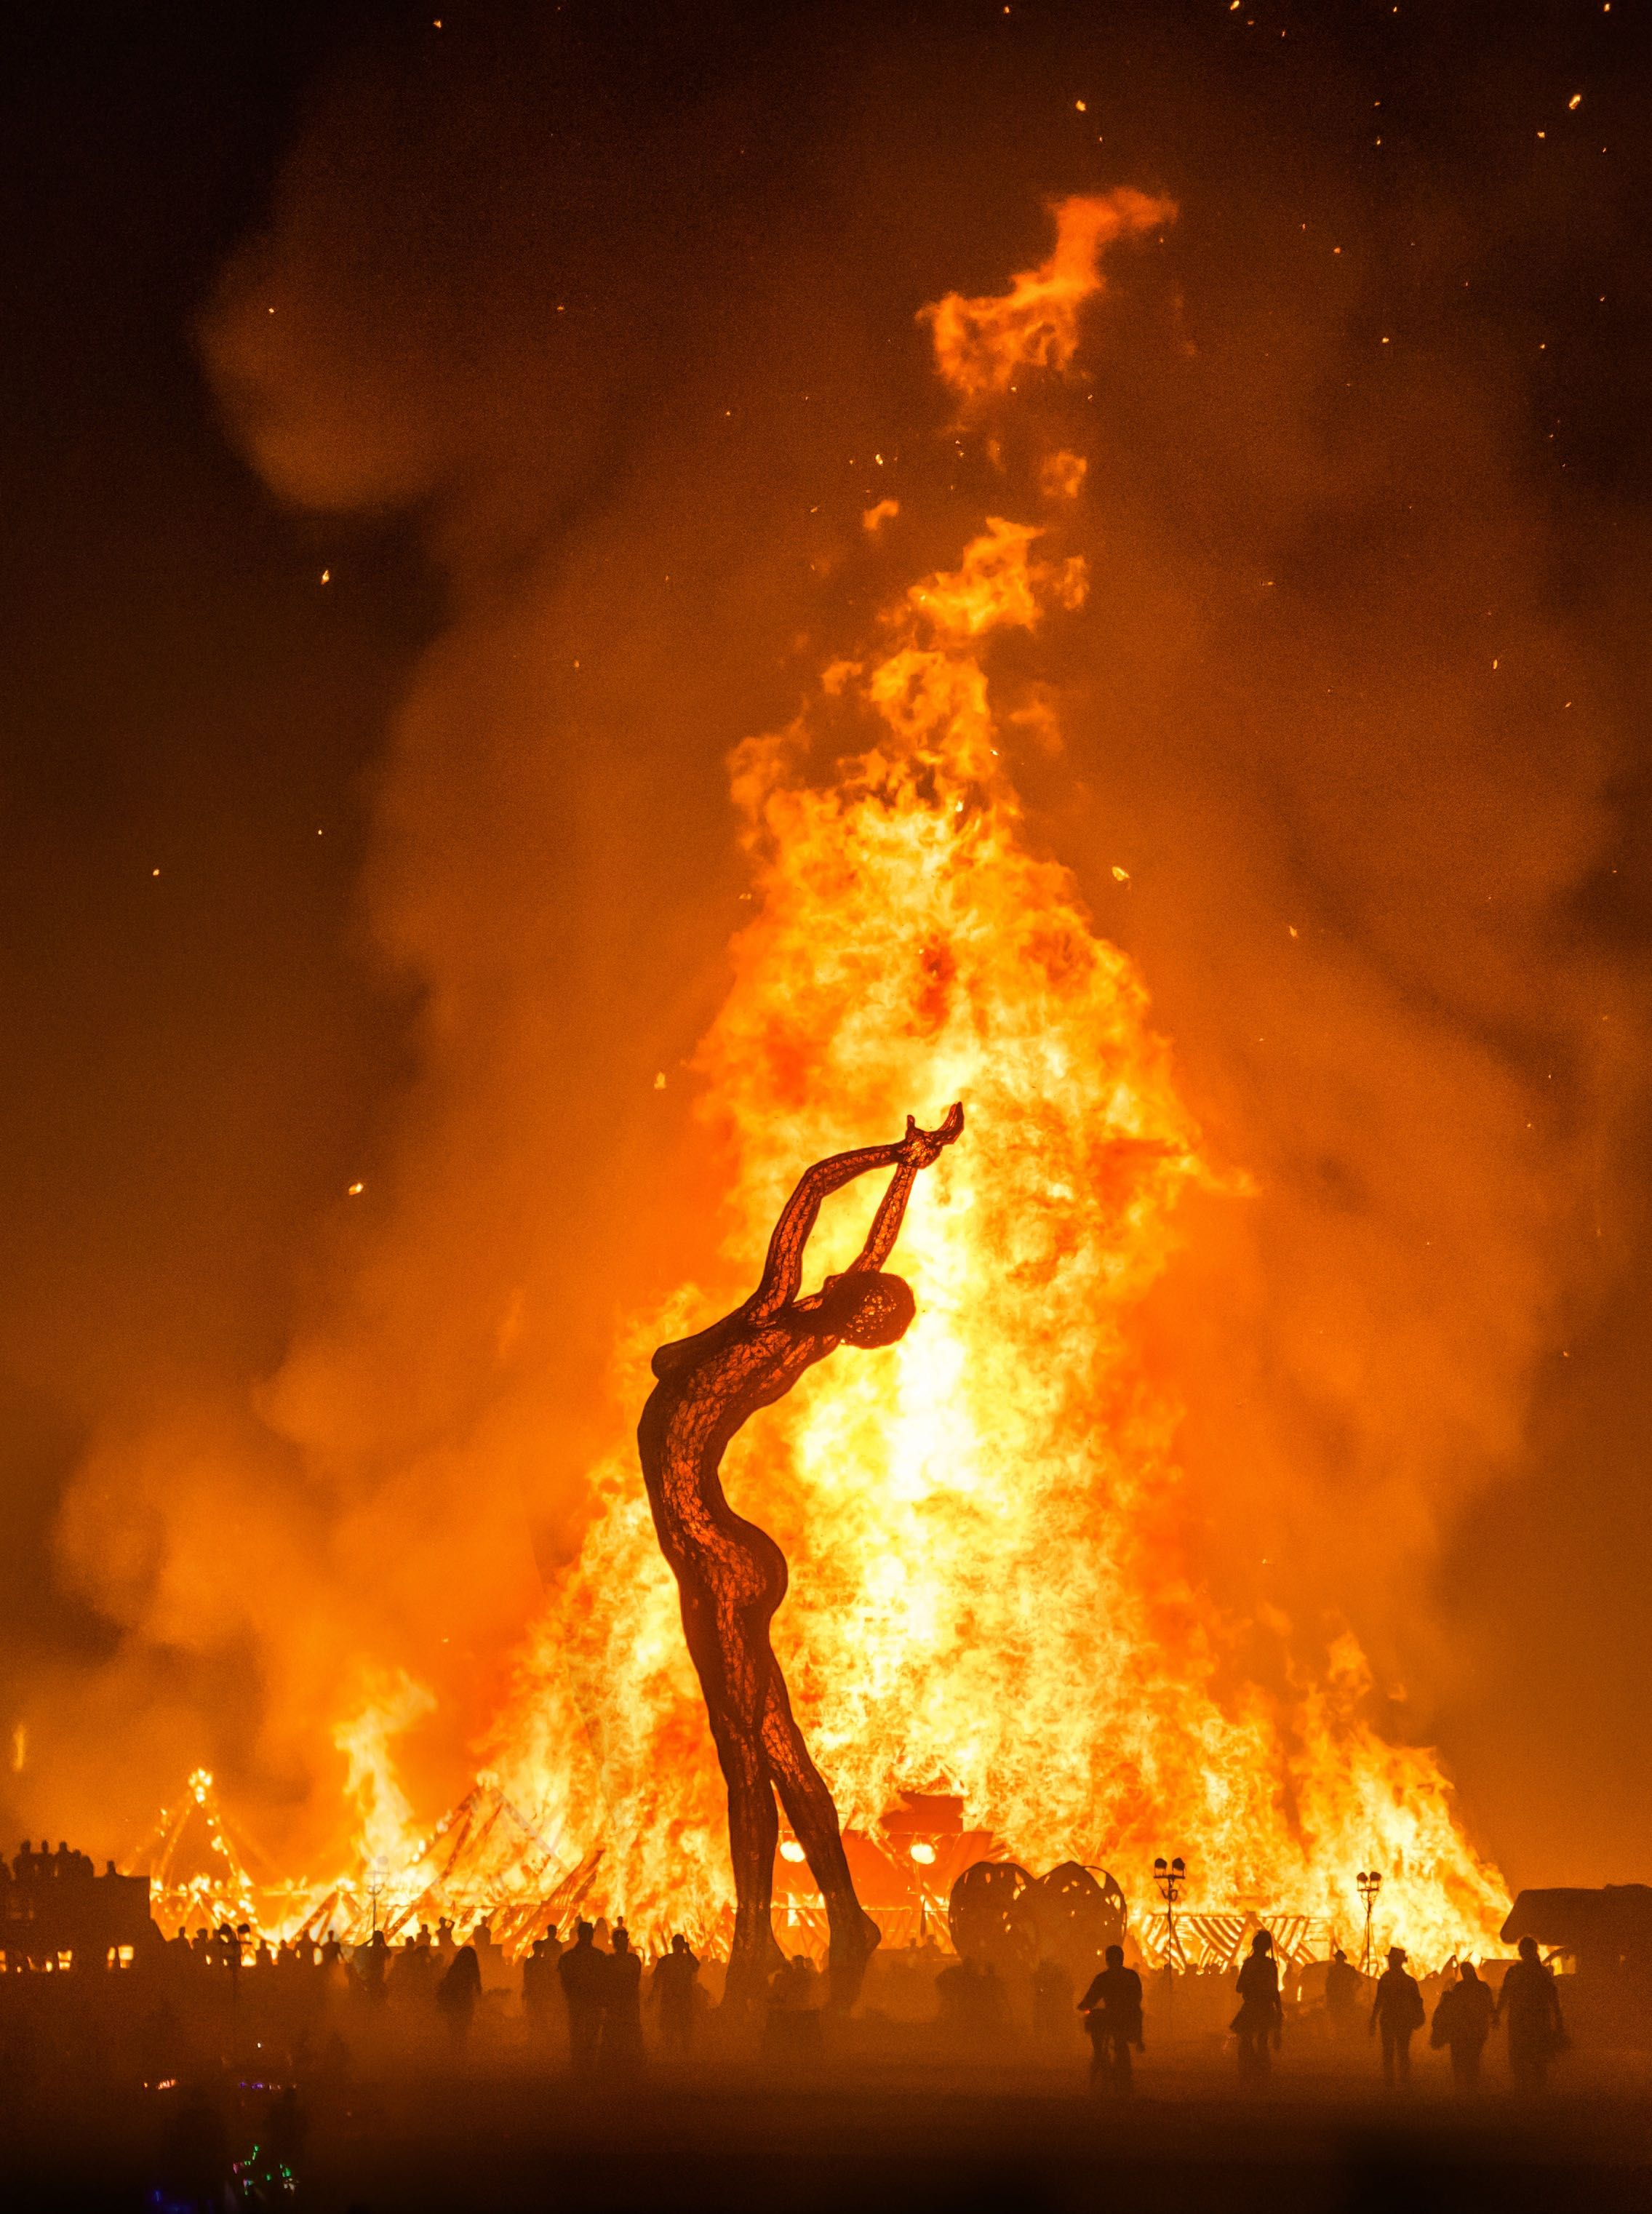 Trey Ratcliff has a collection of  some of the most insane images from Burning Man ever assembled .